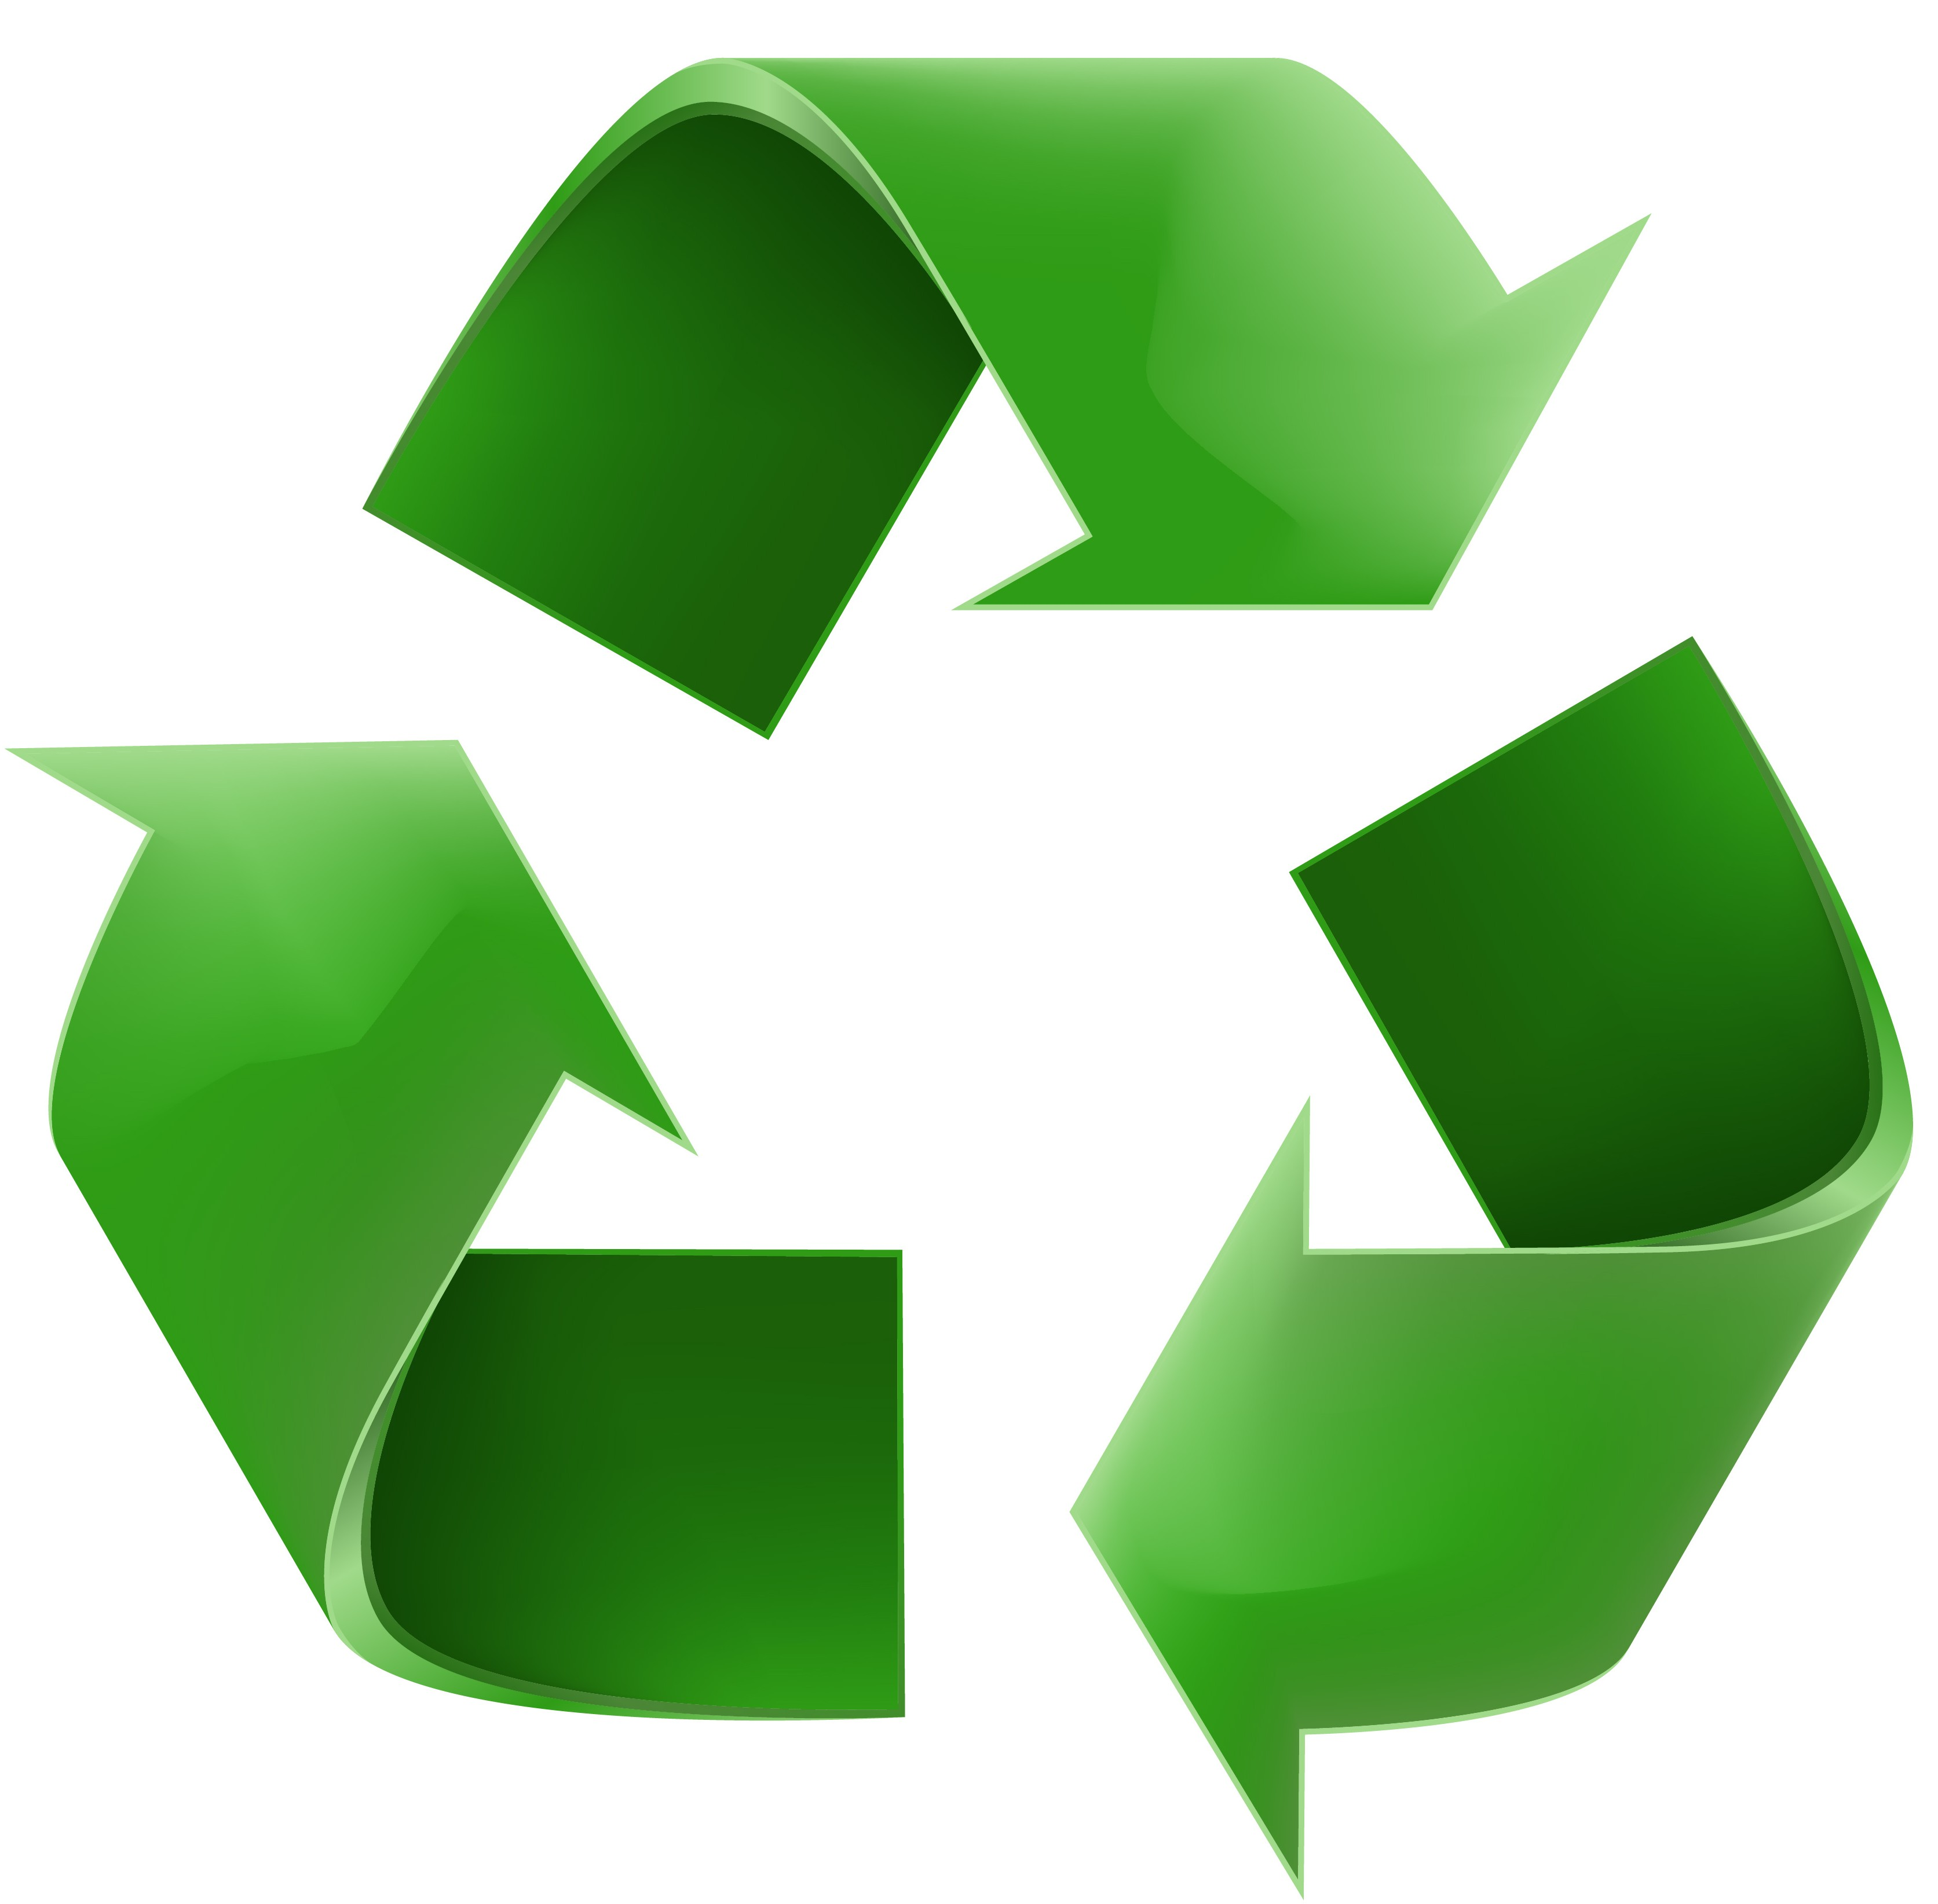 Continent clipart recycle Schedule Recycling 2011 Mobile